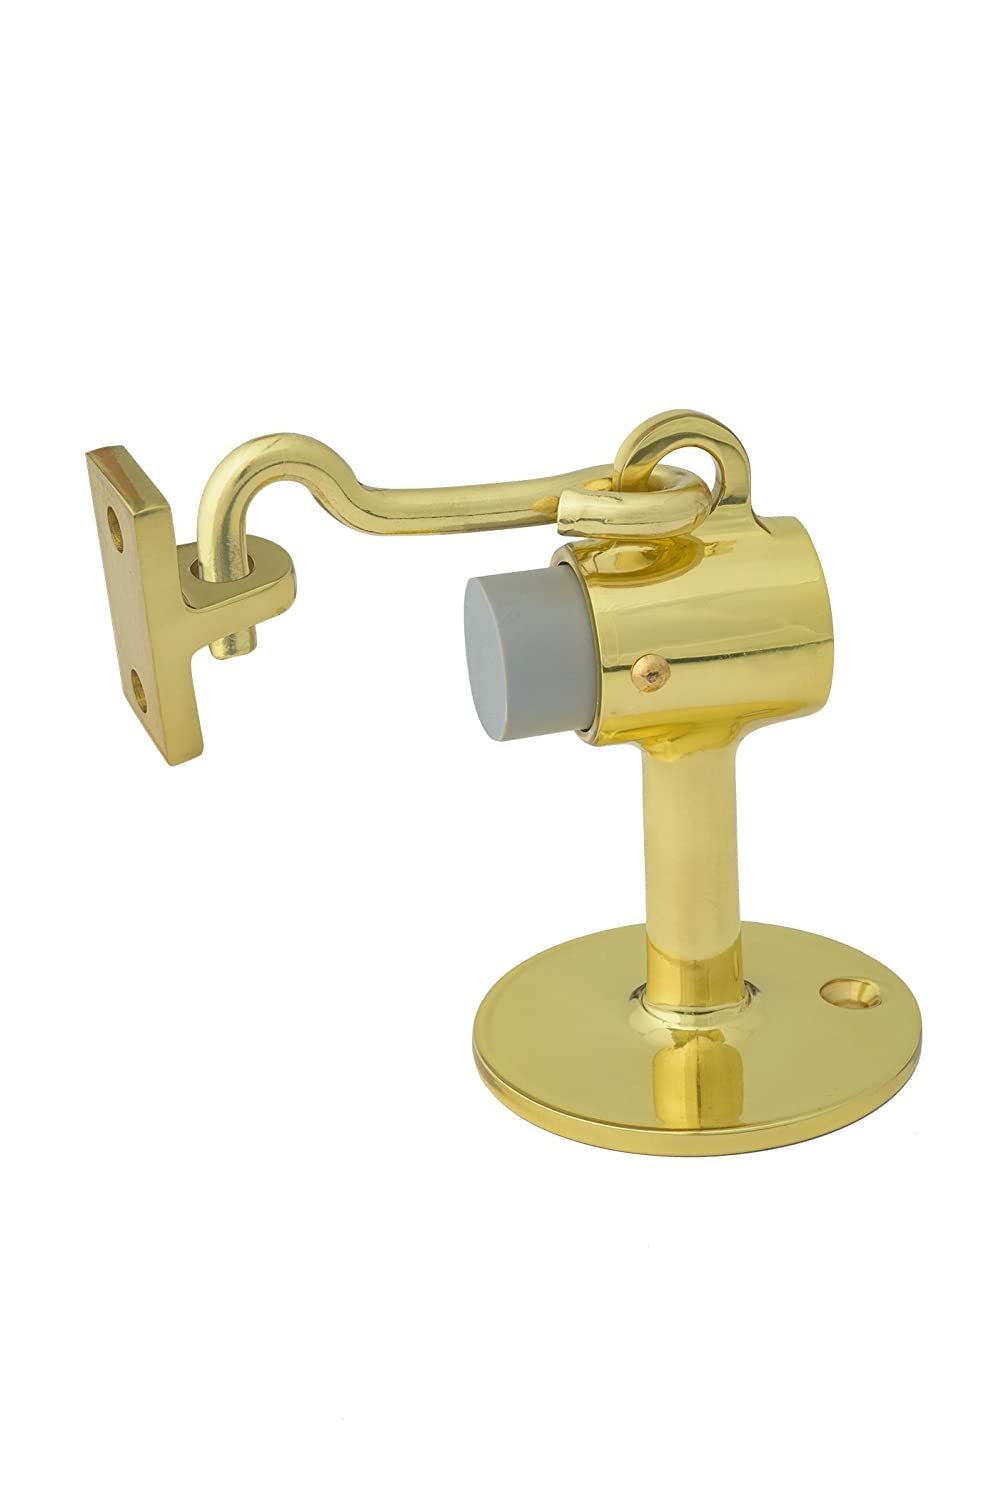 Rockwood 473.3 Brass Door Stop with Keeper #8 x 3//4 OH SMS Fastener with Plastic Anchor Polished Clear Coated Finish 2-1//2 Base Diameter x 3-3//4 Height